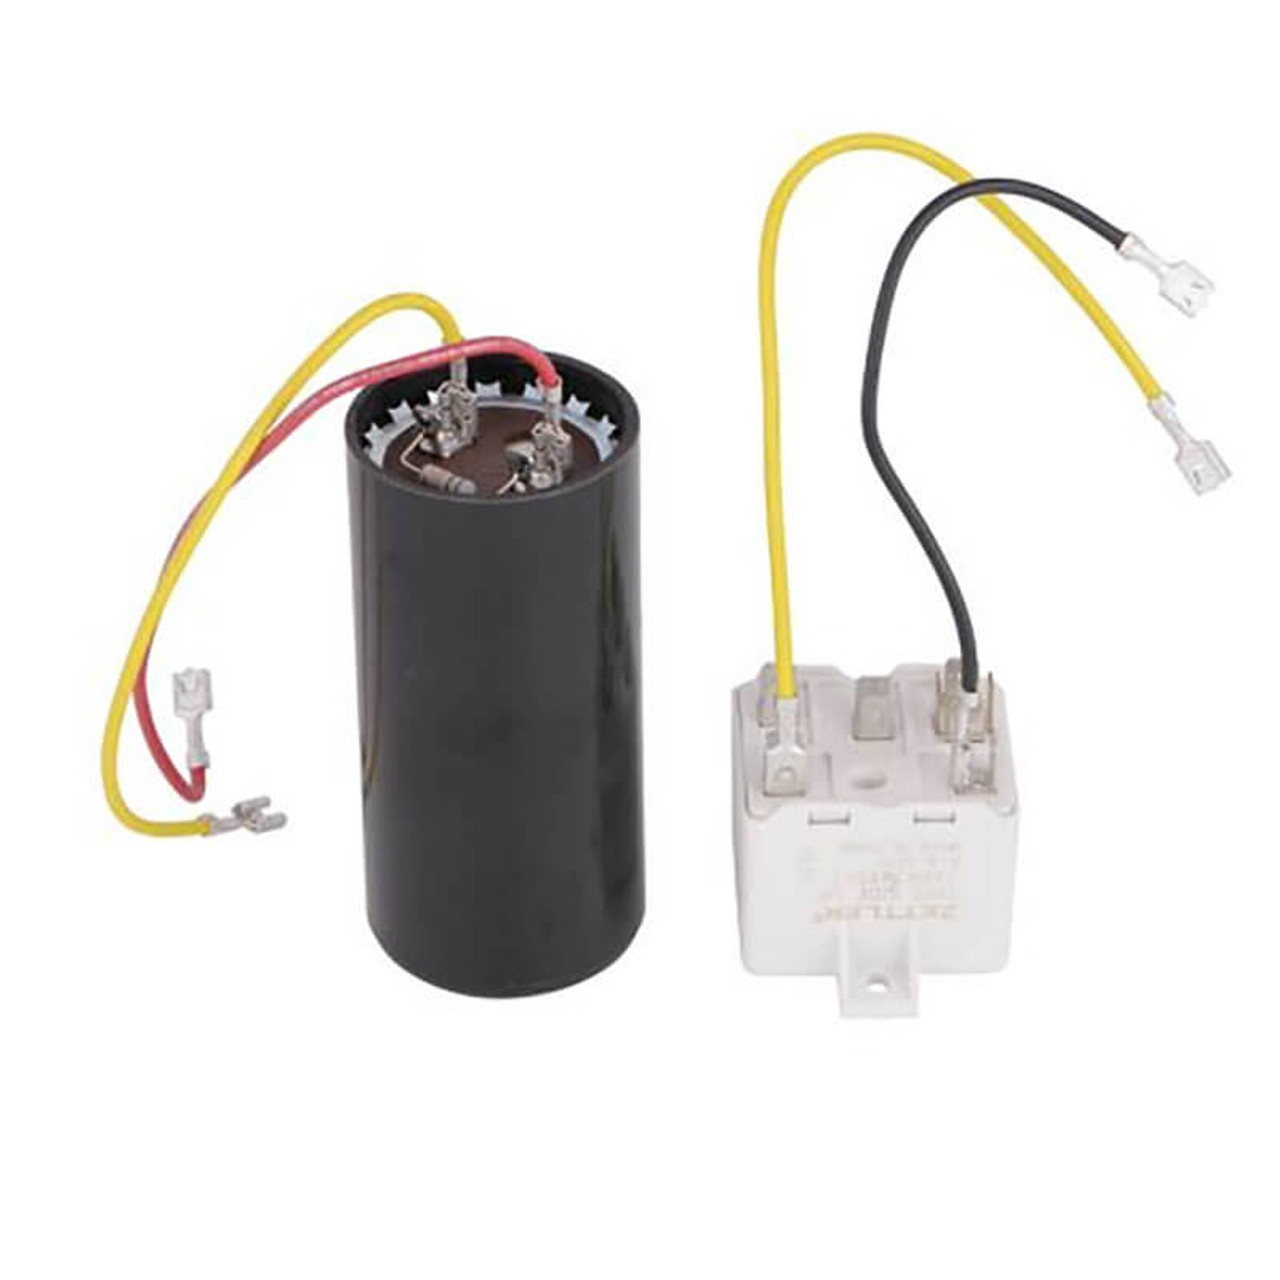 auto start capacitor images diagram writing sample ideas and guide Sony Ericsson W600 Sony Ericsson W995